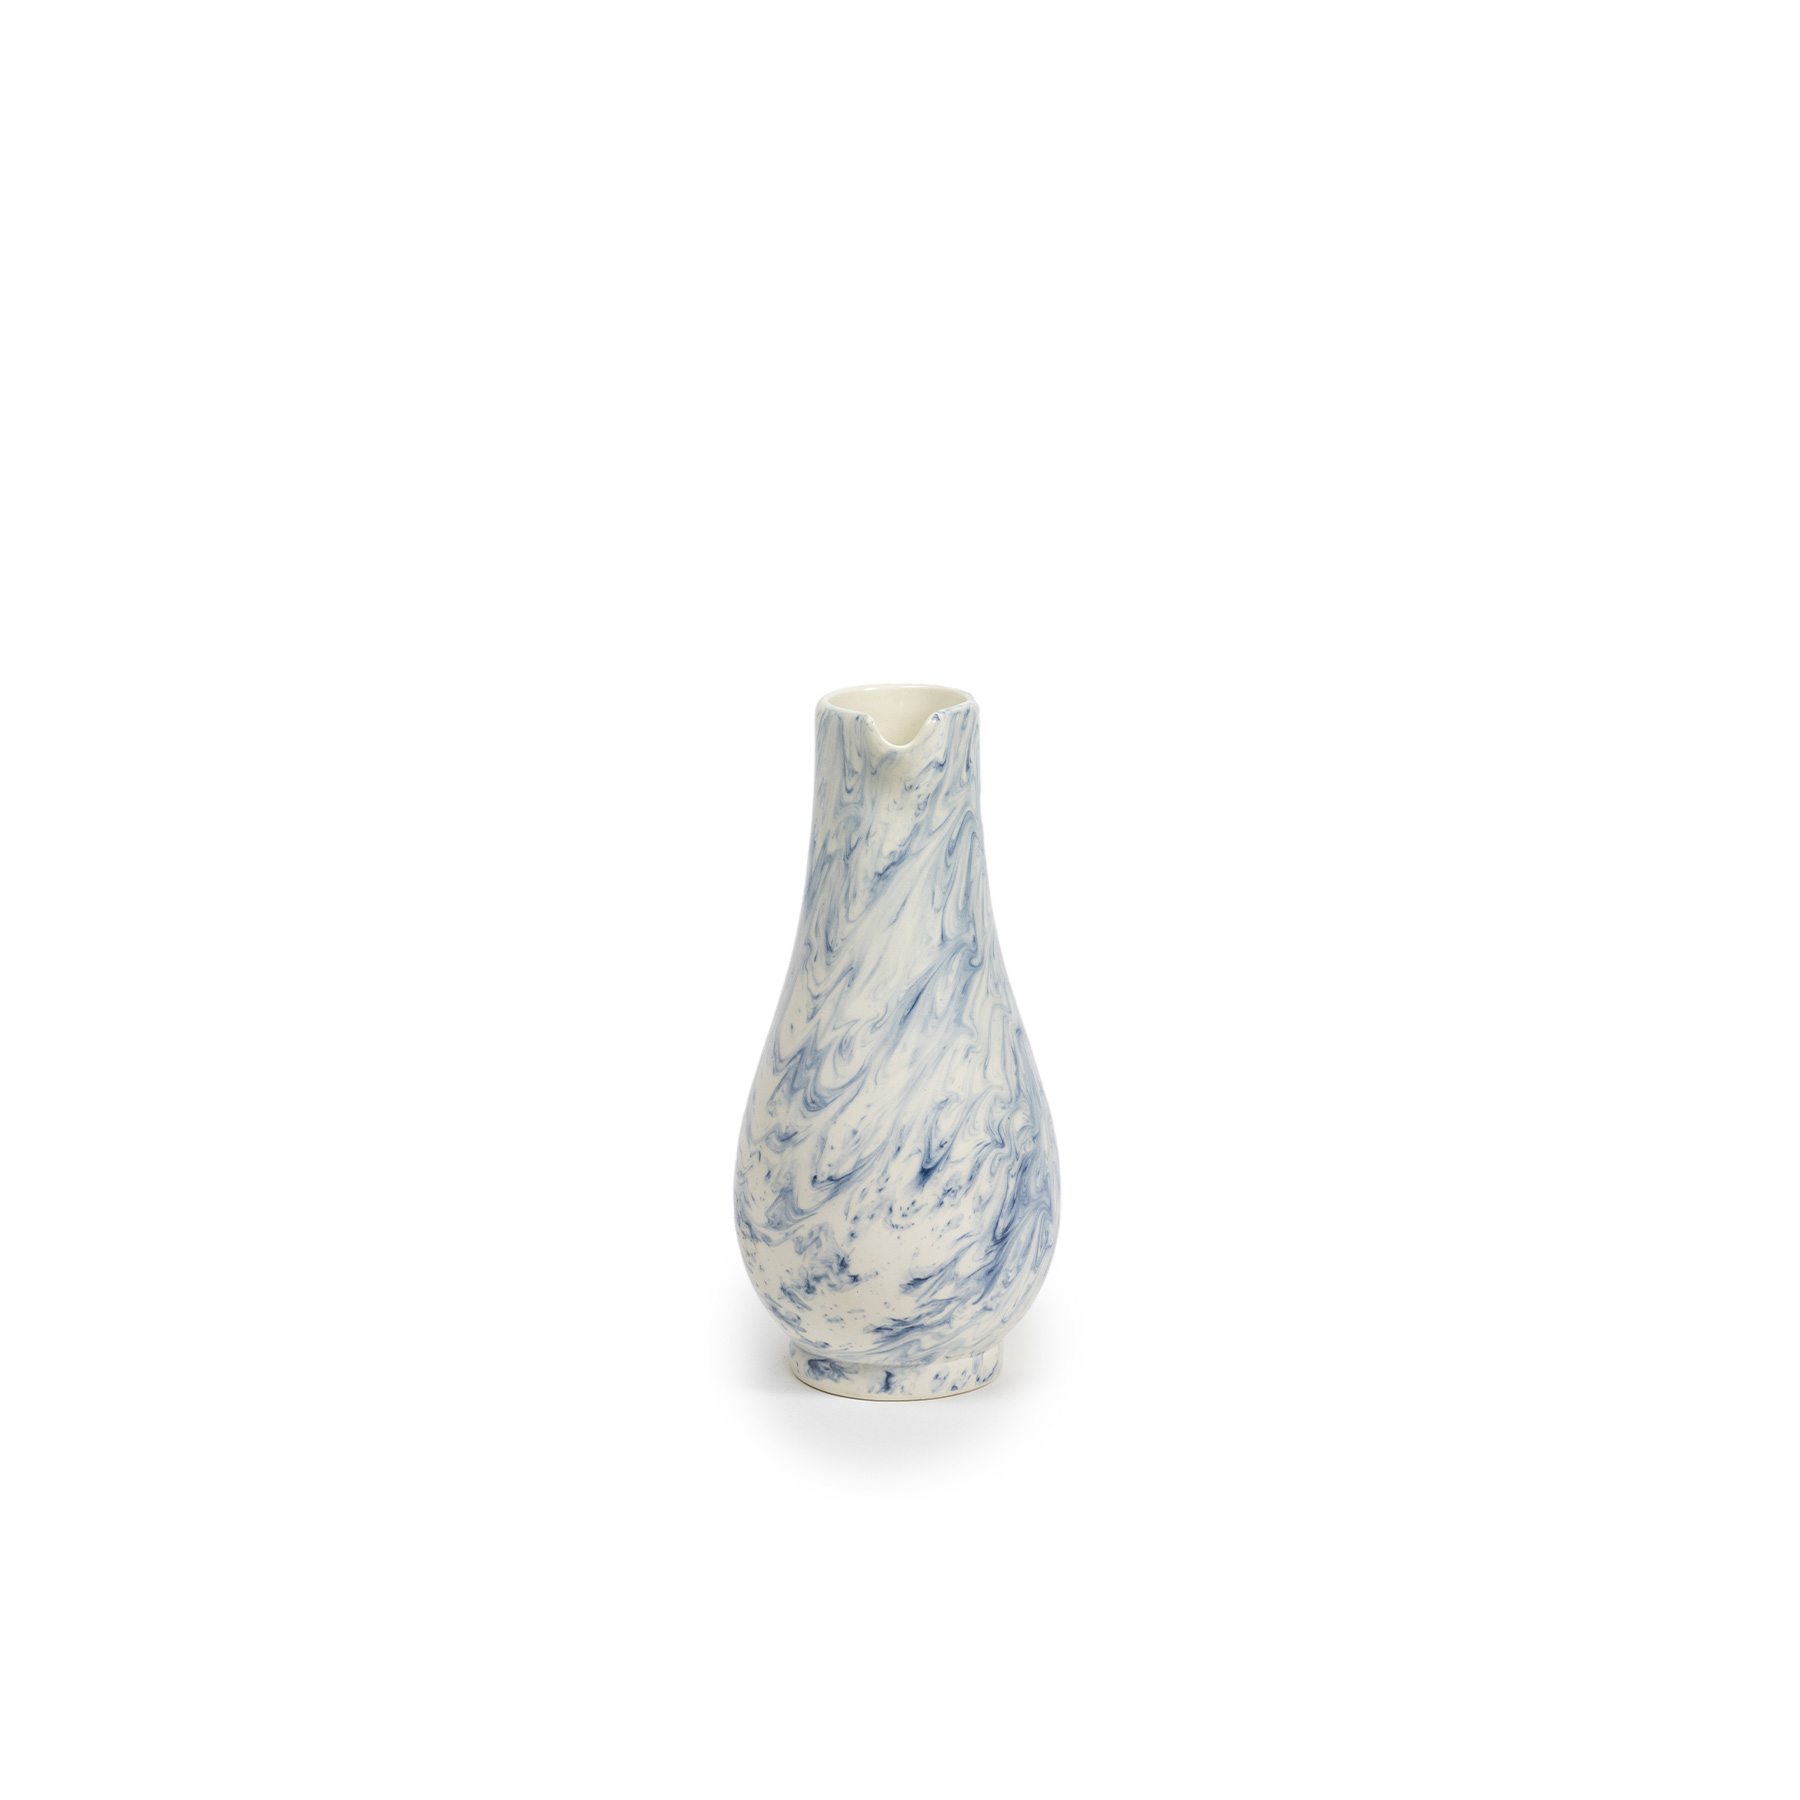 Indigo Storm Jug - Faye Toogood's range of ceramic designs for 1882 Ltd. celebrates the serendipitous beauty of natural imperfections. Indigo Storm, a new interpretation of traditional creamware forms, draws upon the chance patterns created when pigment added to the slip coating does not fully blend. The whorls and eddies resulting from these experiments, like meteorological formations in miniature, make up the collection's central motifs, appearing on pieces including plates, bowls and cups. Representing a streamlined take on our ceramic heritage, the fine earthenware employs the familiar tones of English Delftware: cream offset with a rich, deep blue. Dishwasher and Microwave safe.  | Matter of Stuff